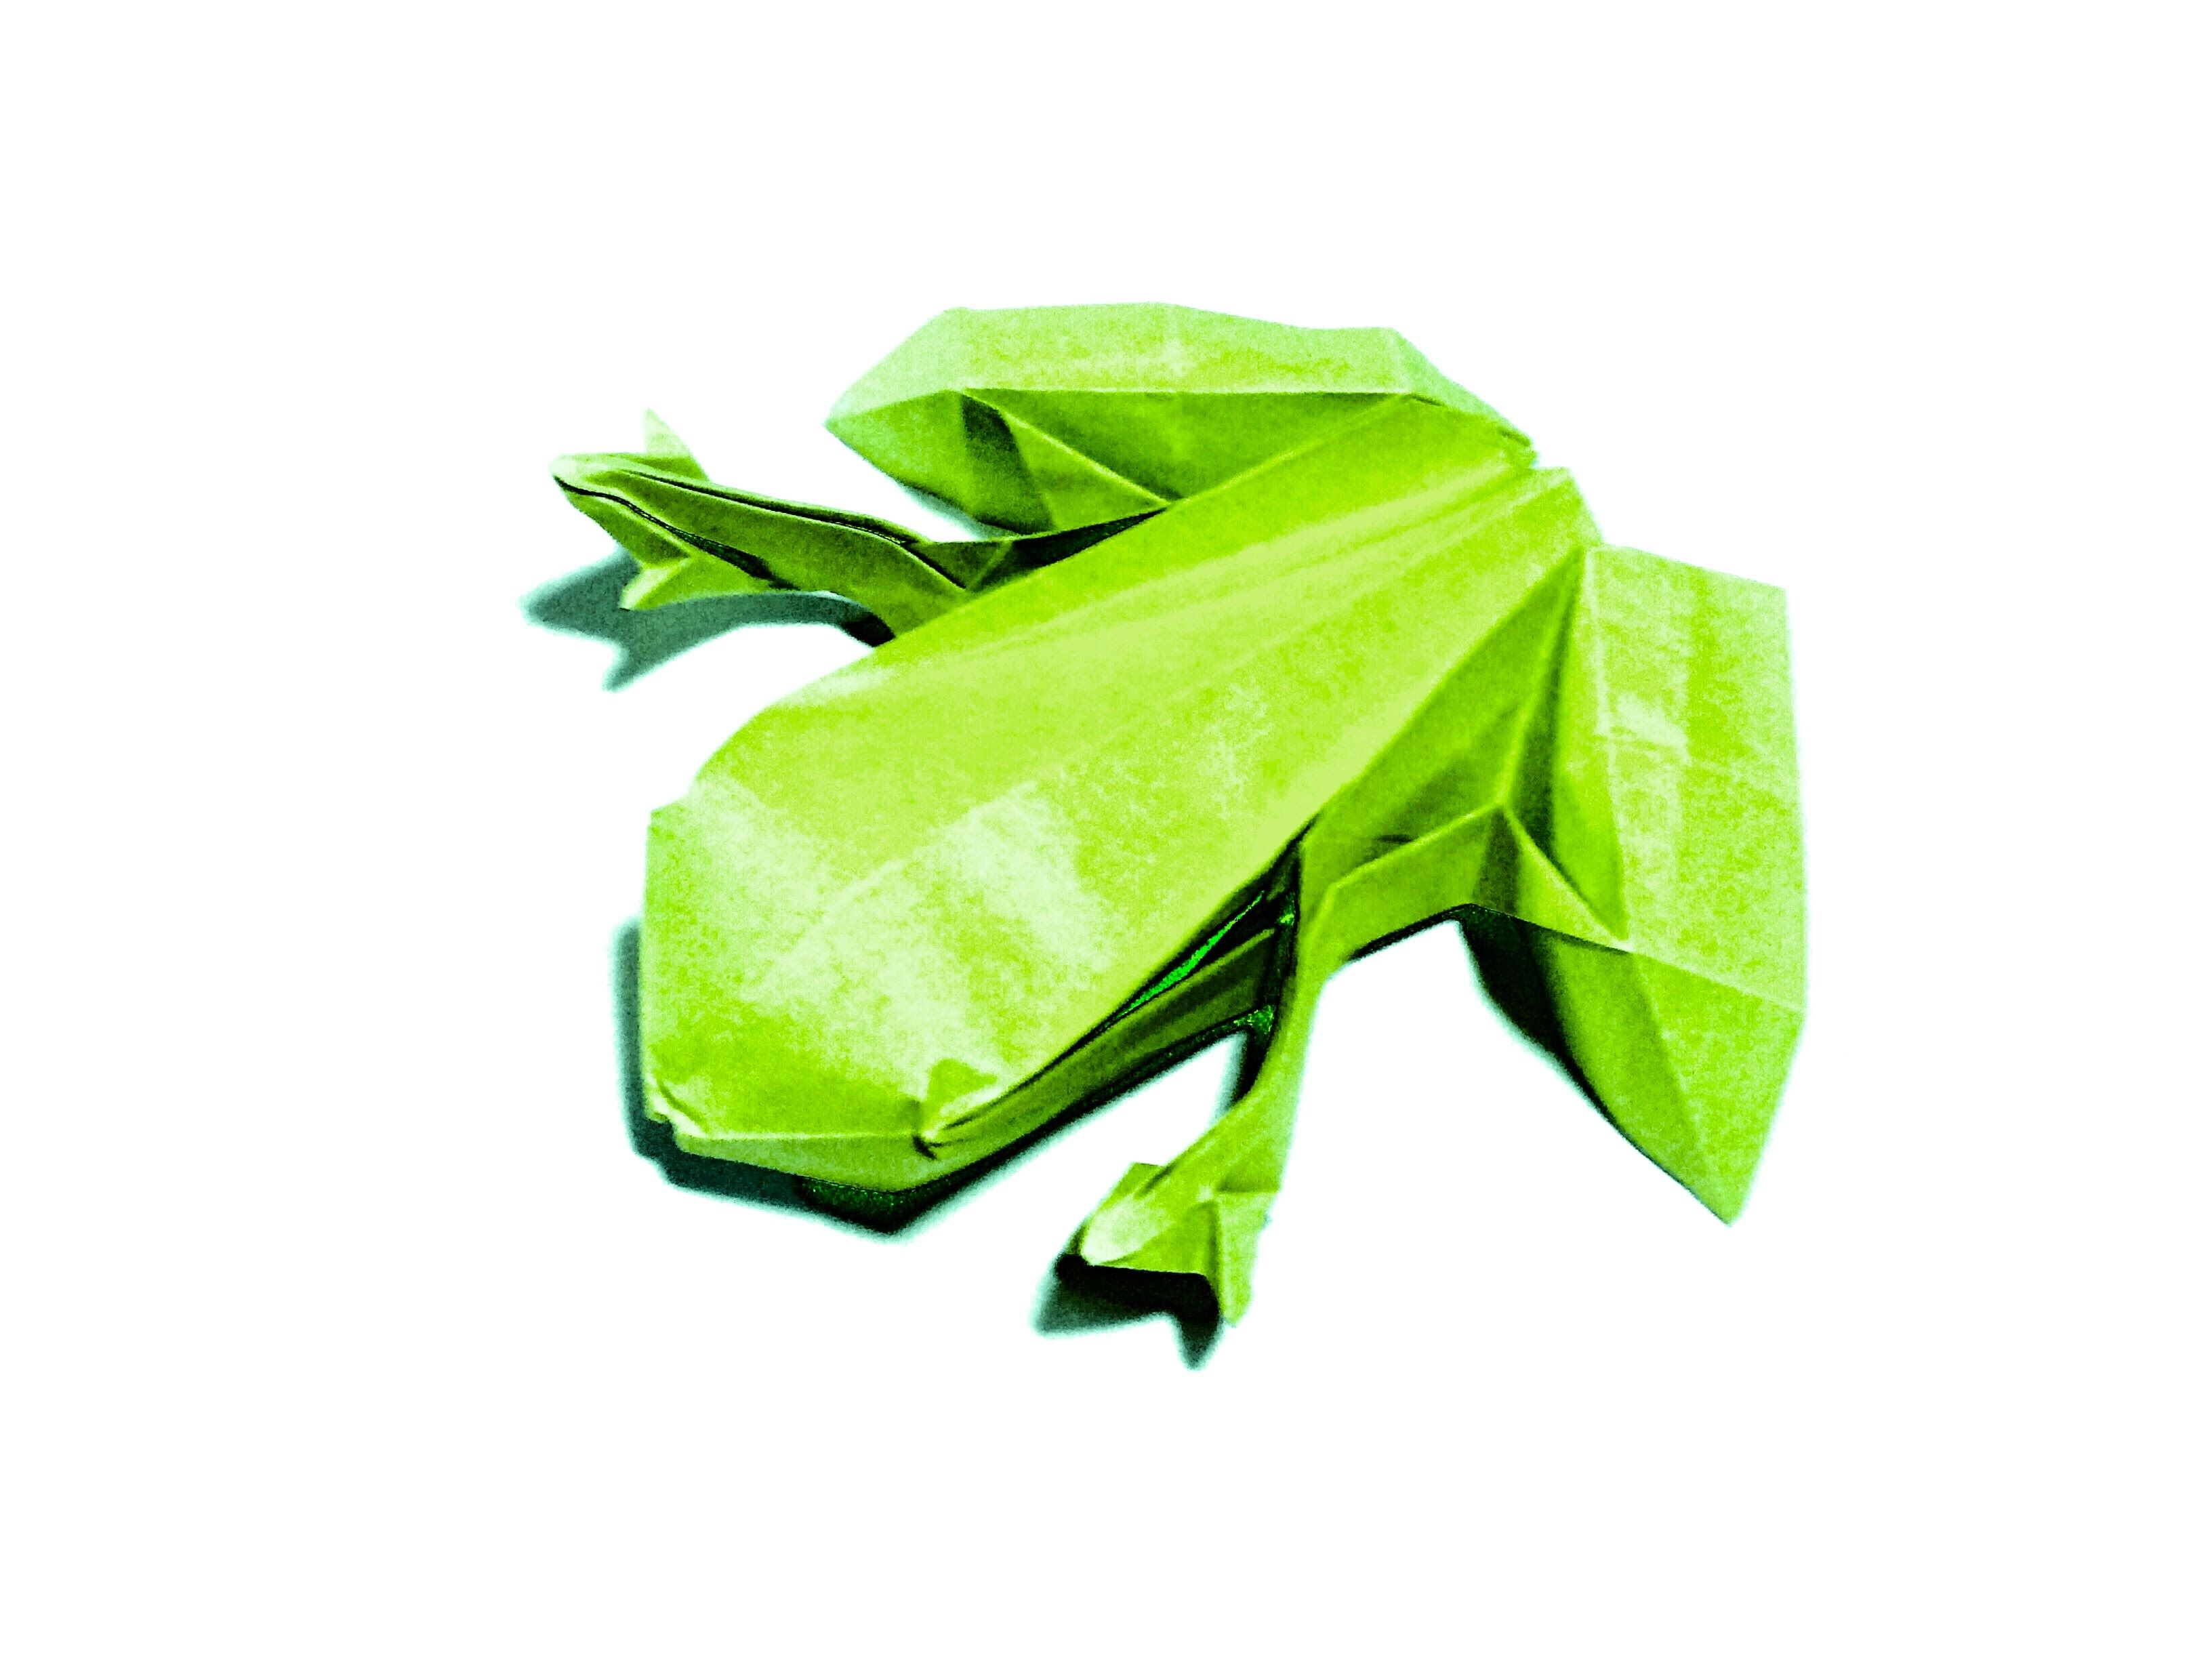 Origami Frog (Ranoshi) 折り紙 かえる | Origami tutorial ... - photo#25